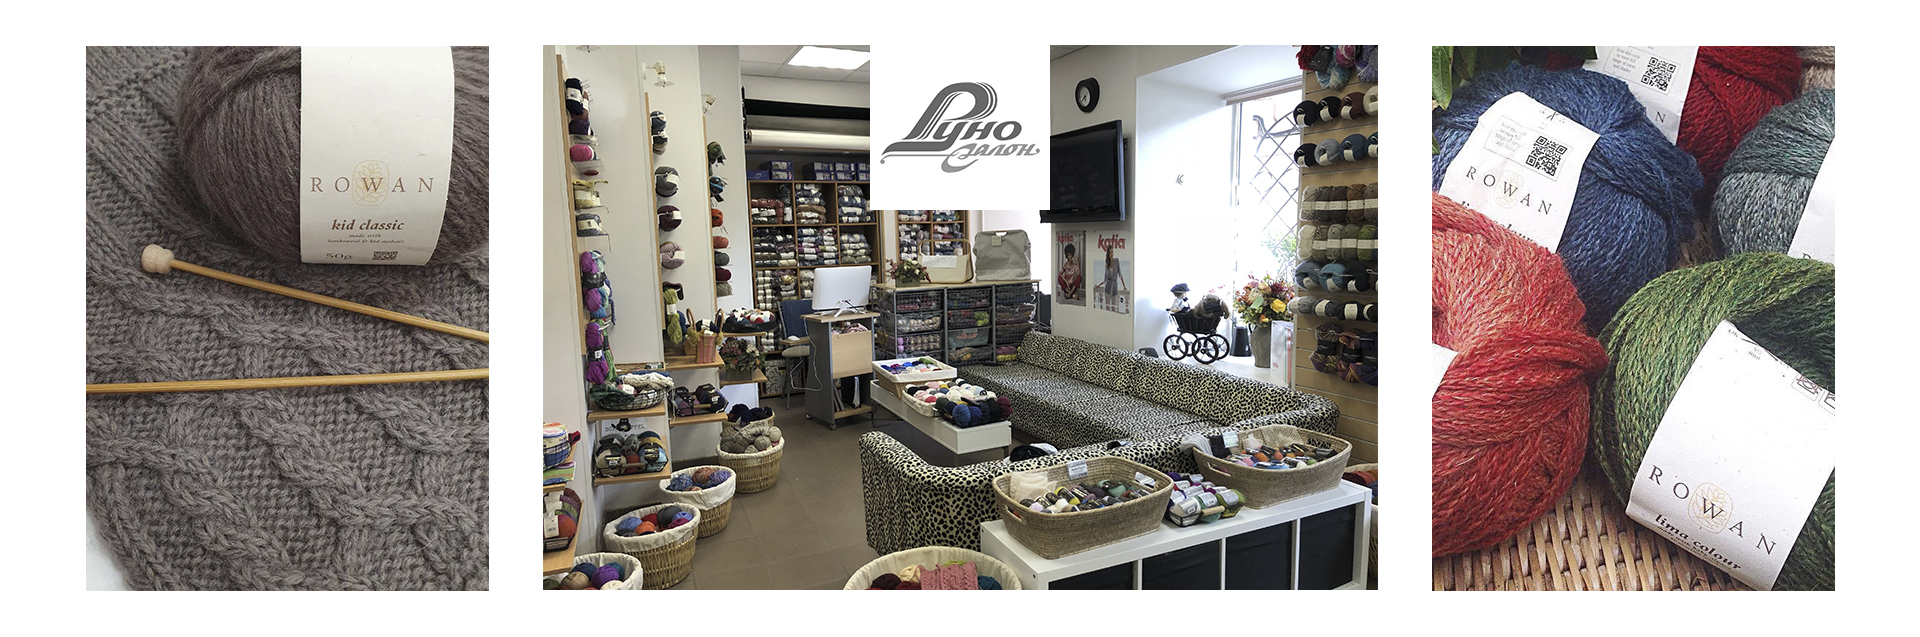 We sell yarn and knitting needles of premium class. The largest selection in Saint Petersburg.